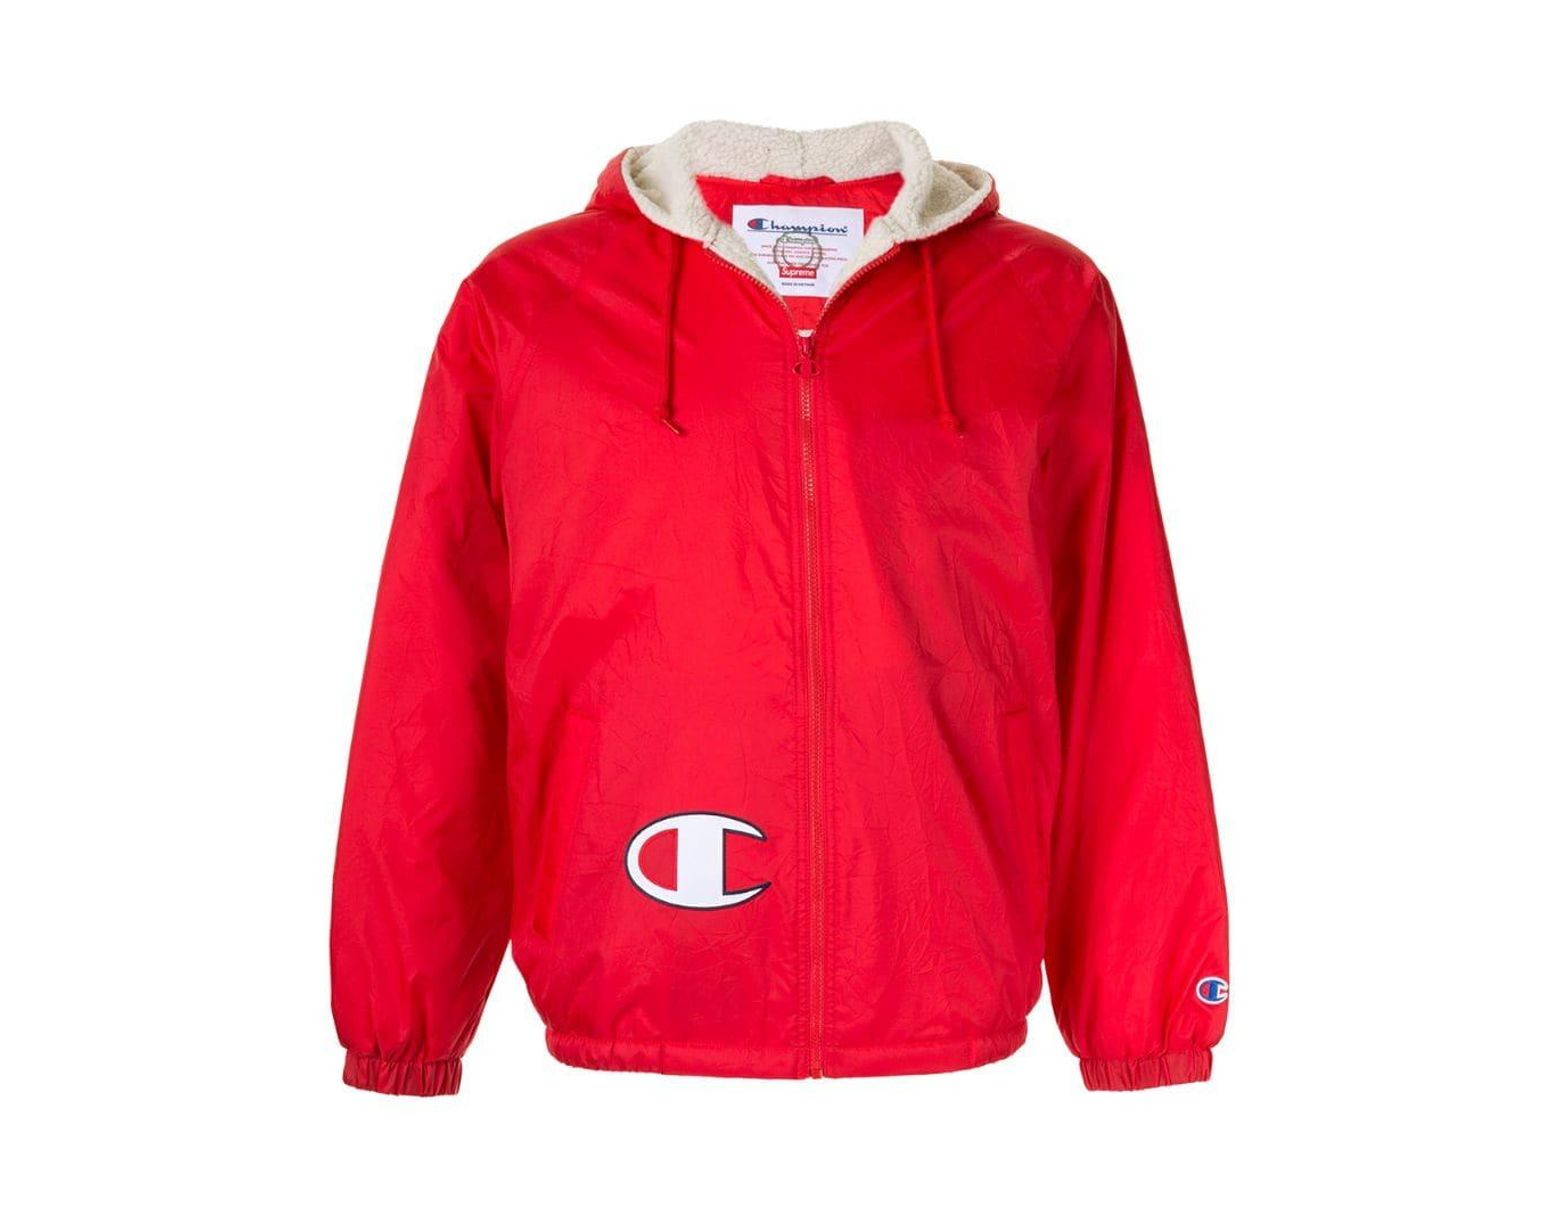 48965b7b Supreme Champion Sherpa Lined Hooded Jacket Fw17 in Red for Men - Lyst